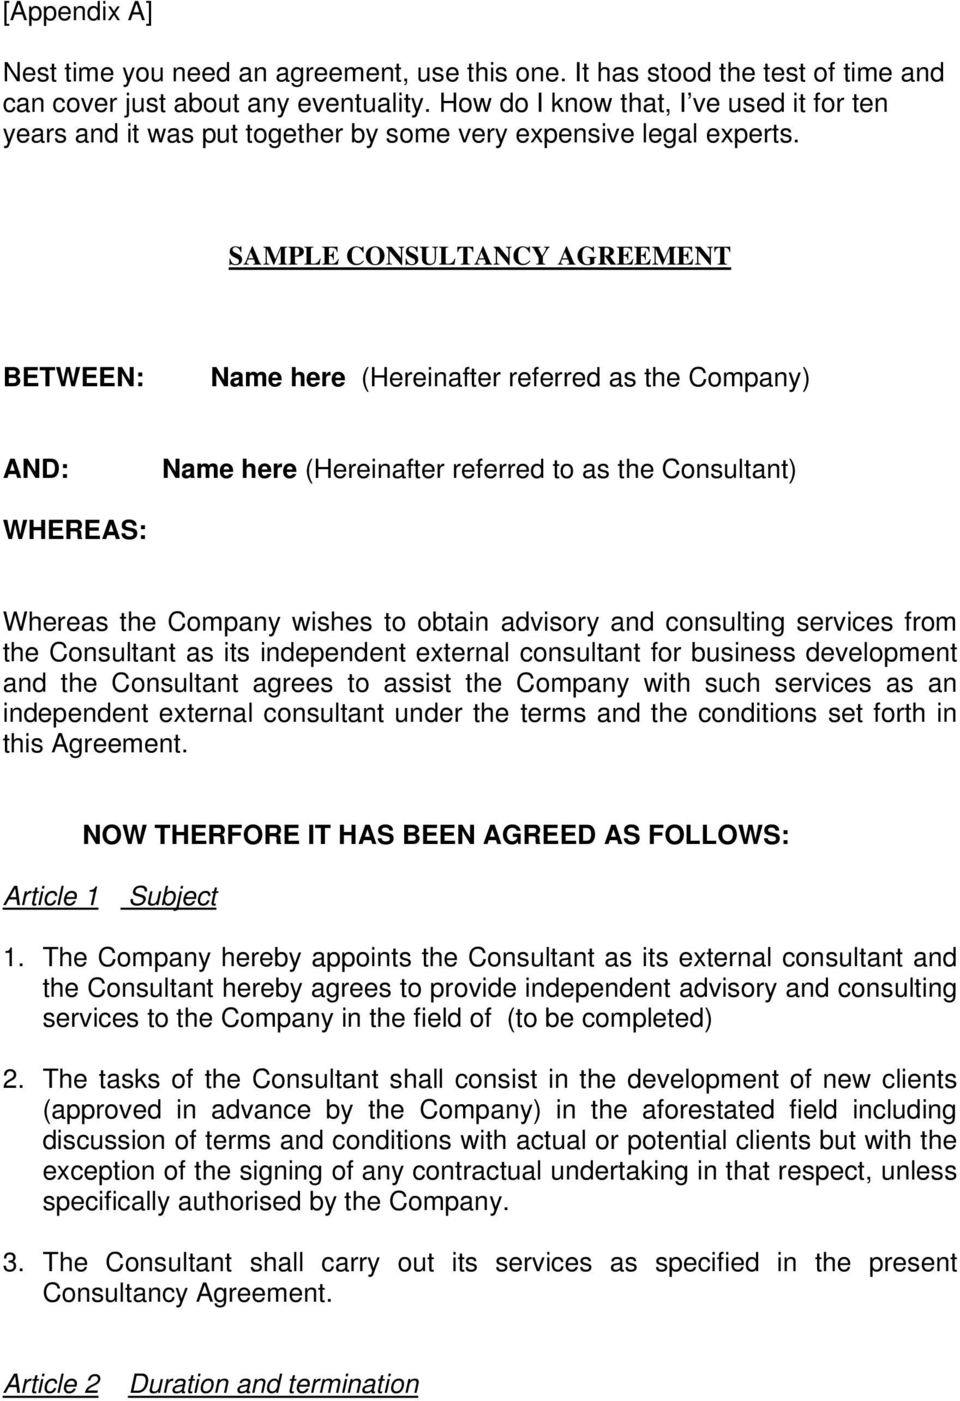 SAMPLE CONSULTANCY AGREEMENT BETWEEN: Name here (Hereinafter referred as the Company) AND: Name here (Hereinafter referred to as the Consultant) WHEREAS: Whereas the Company wishes to obtain advisory